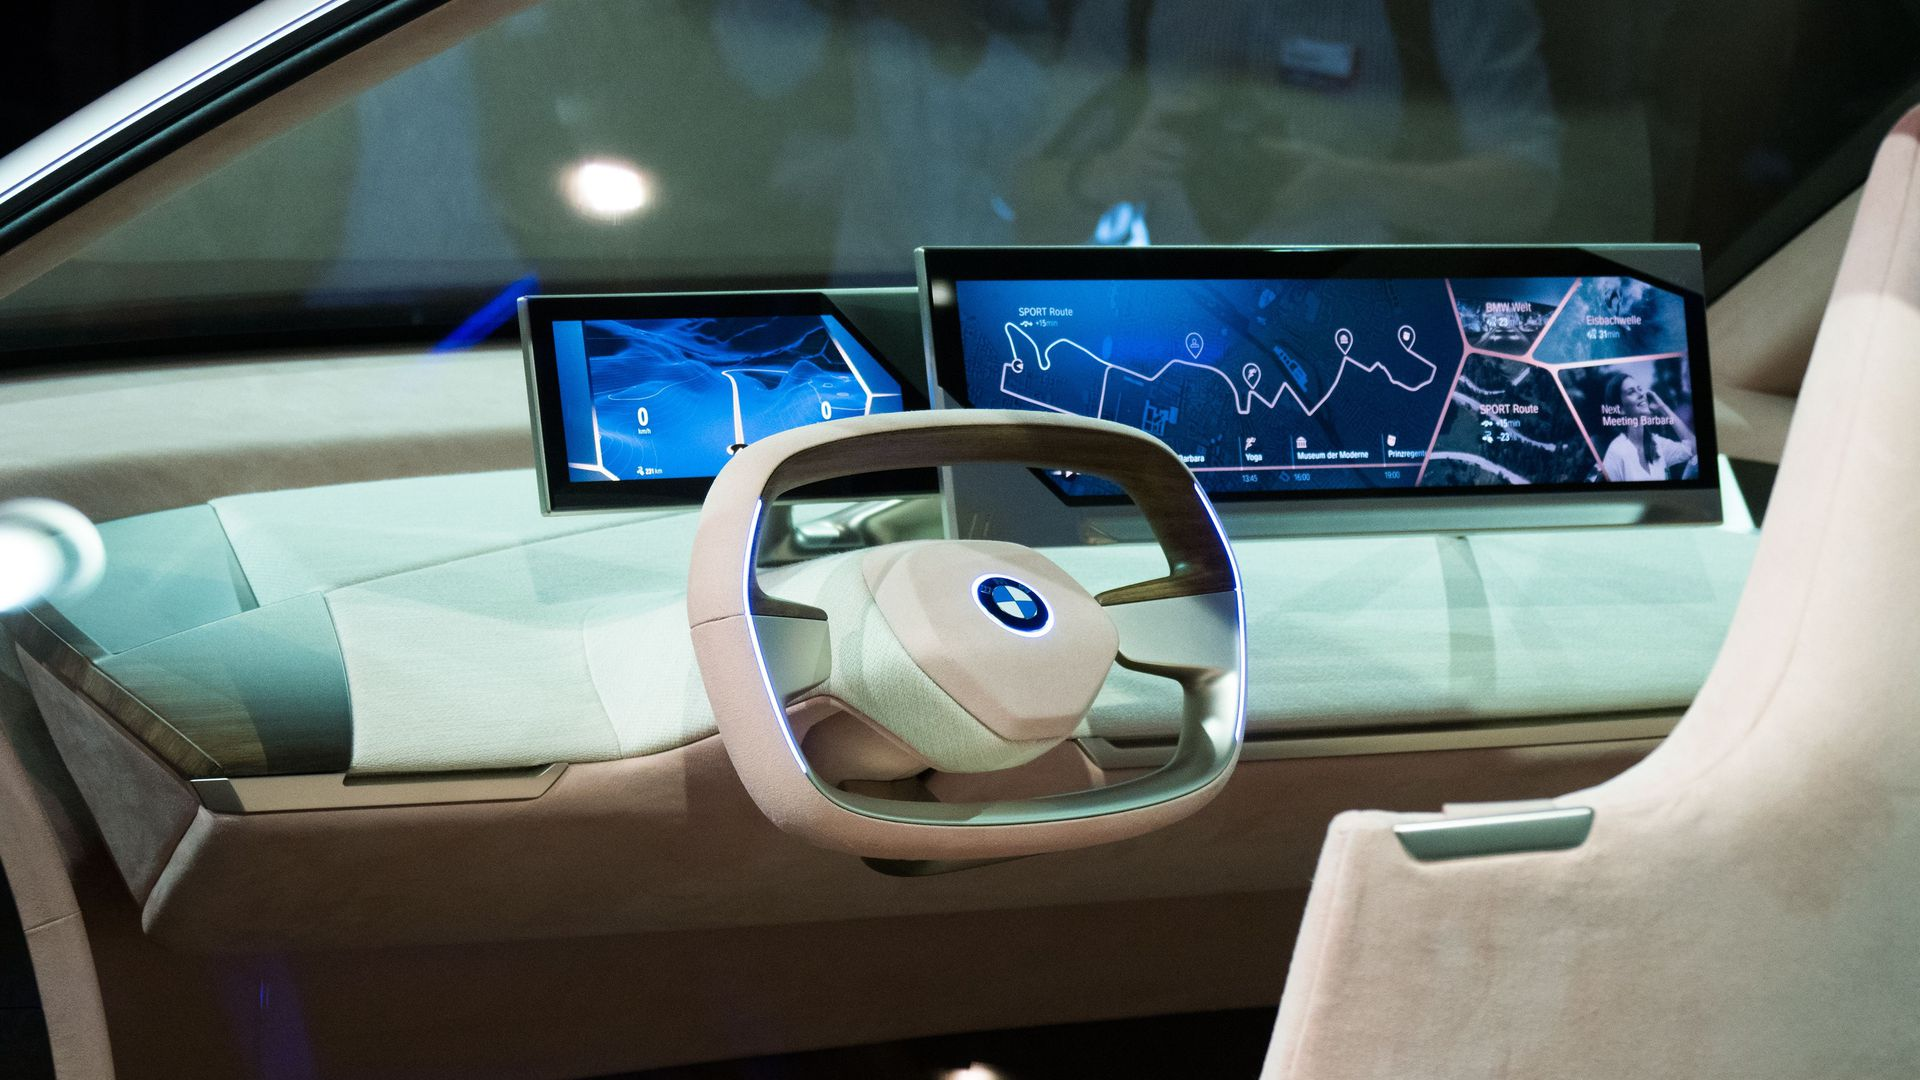 The steering wheel and display inside the BMW Vision iNEXT are unveiled at a special event ahead of the LA Auto Show, November 27, 2018 in Los Angeles.